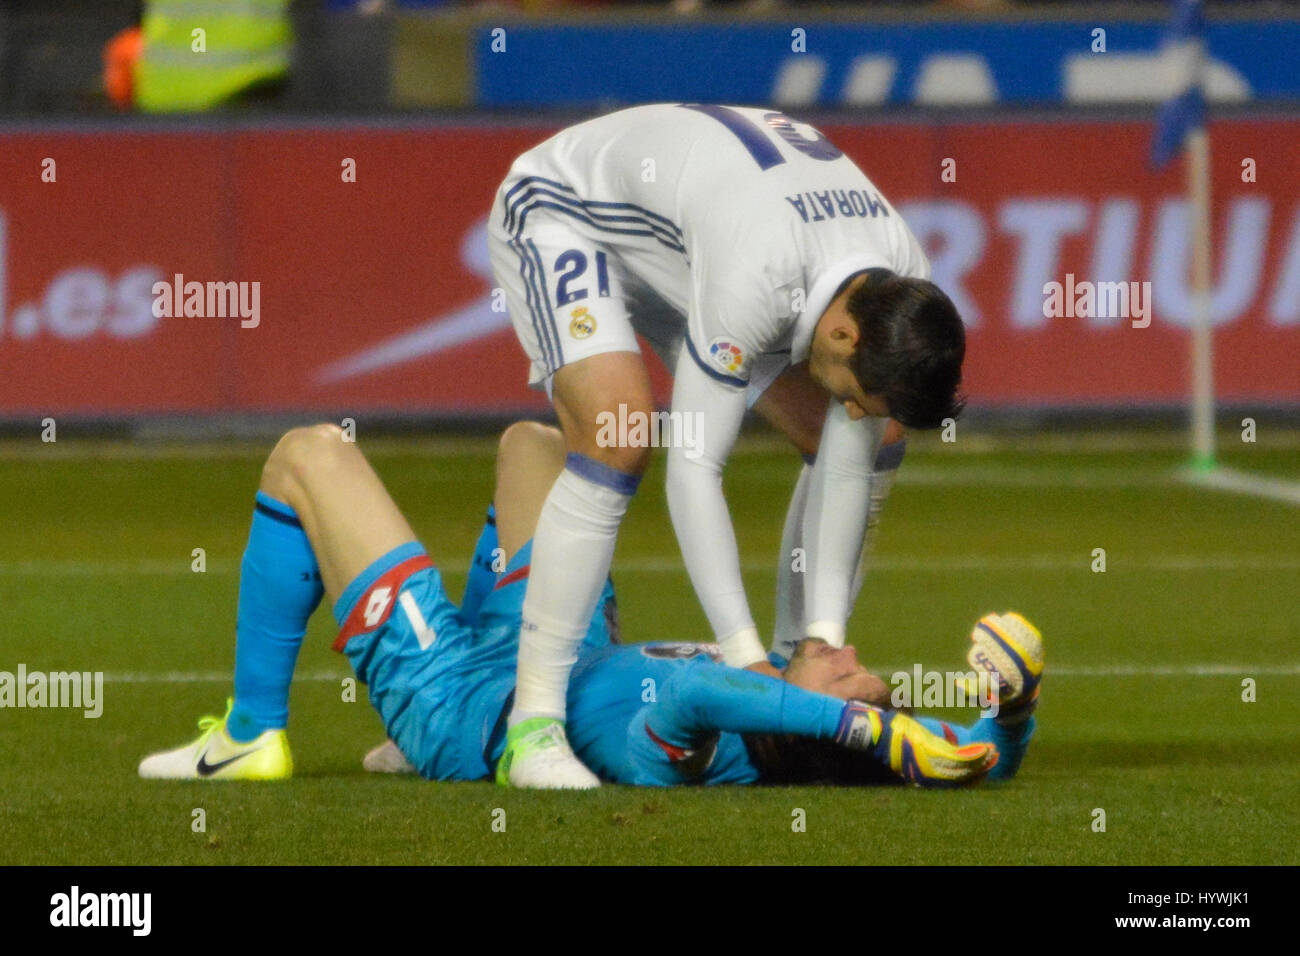 62df721ad34 Real Madrid Cf Stock Photos   Real Madrid Cf Stock Images - Alamy